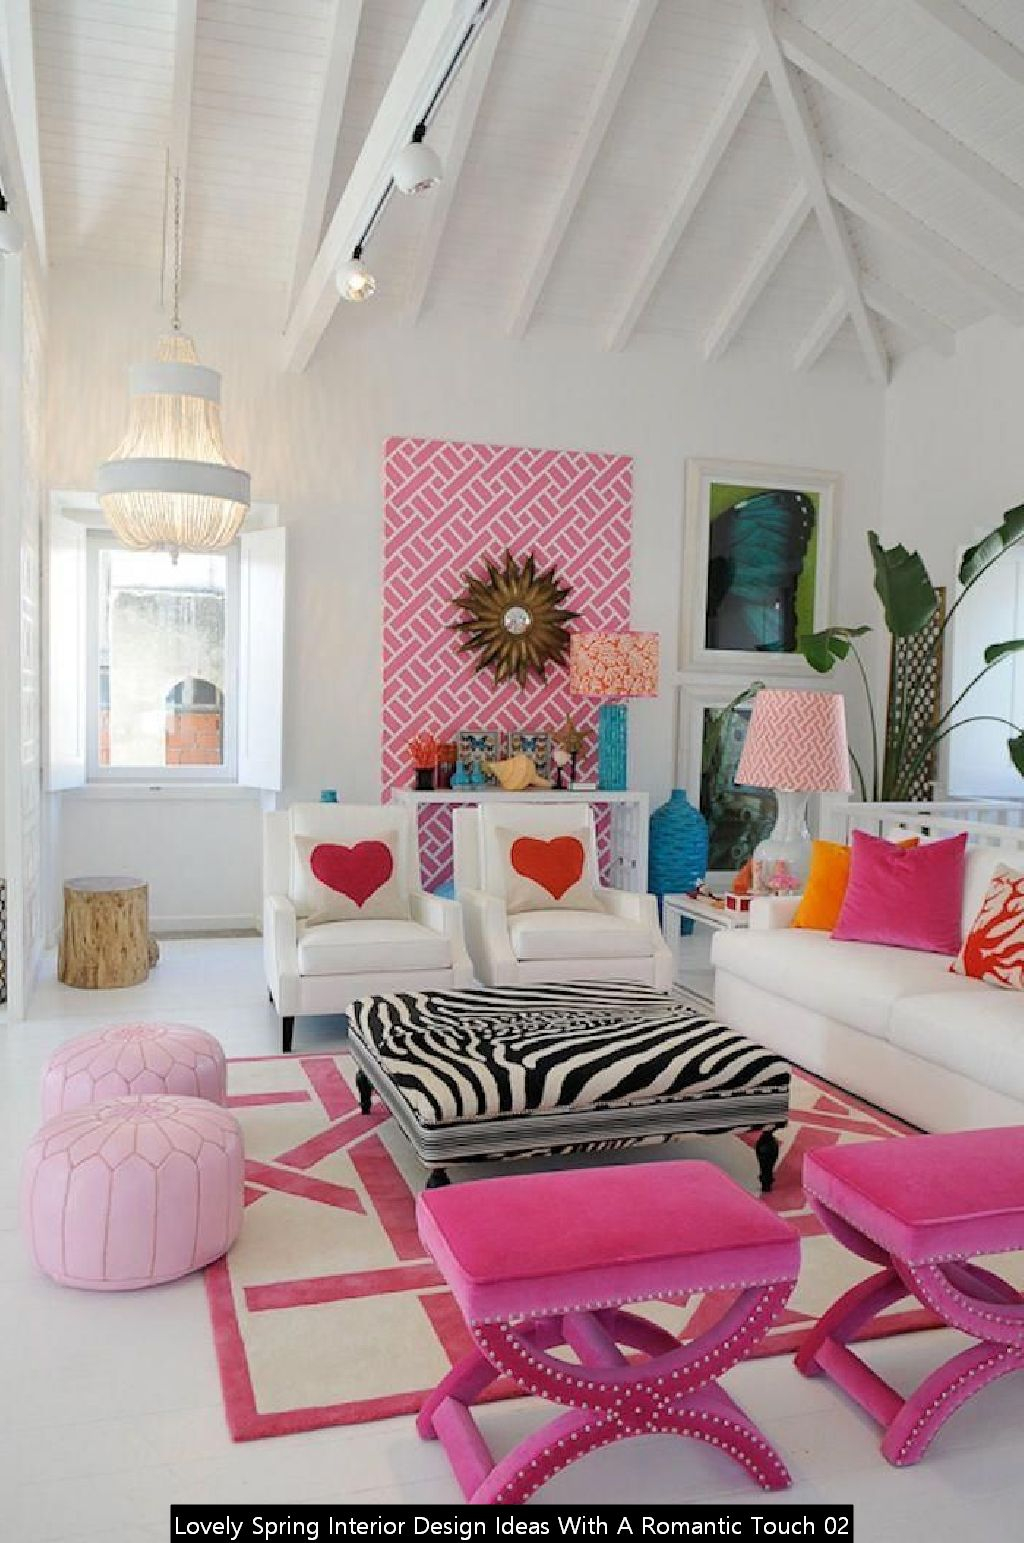 Lovely Spring Interior Design Ideas With A Romantic Touch 02